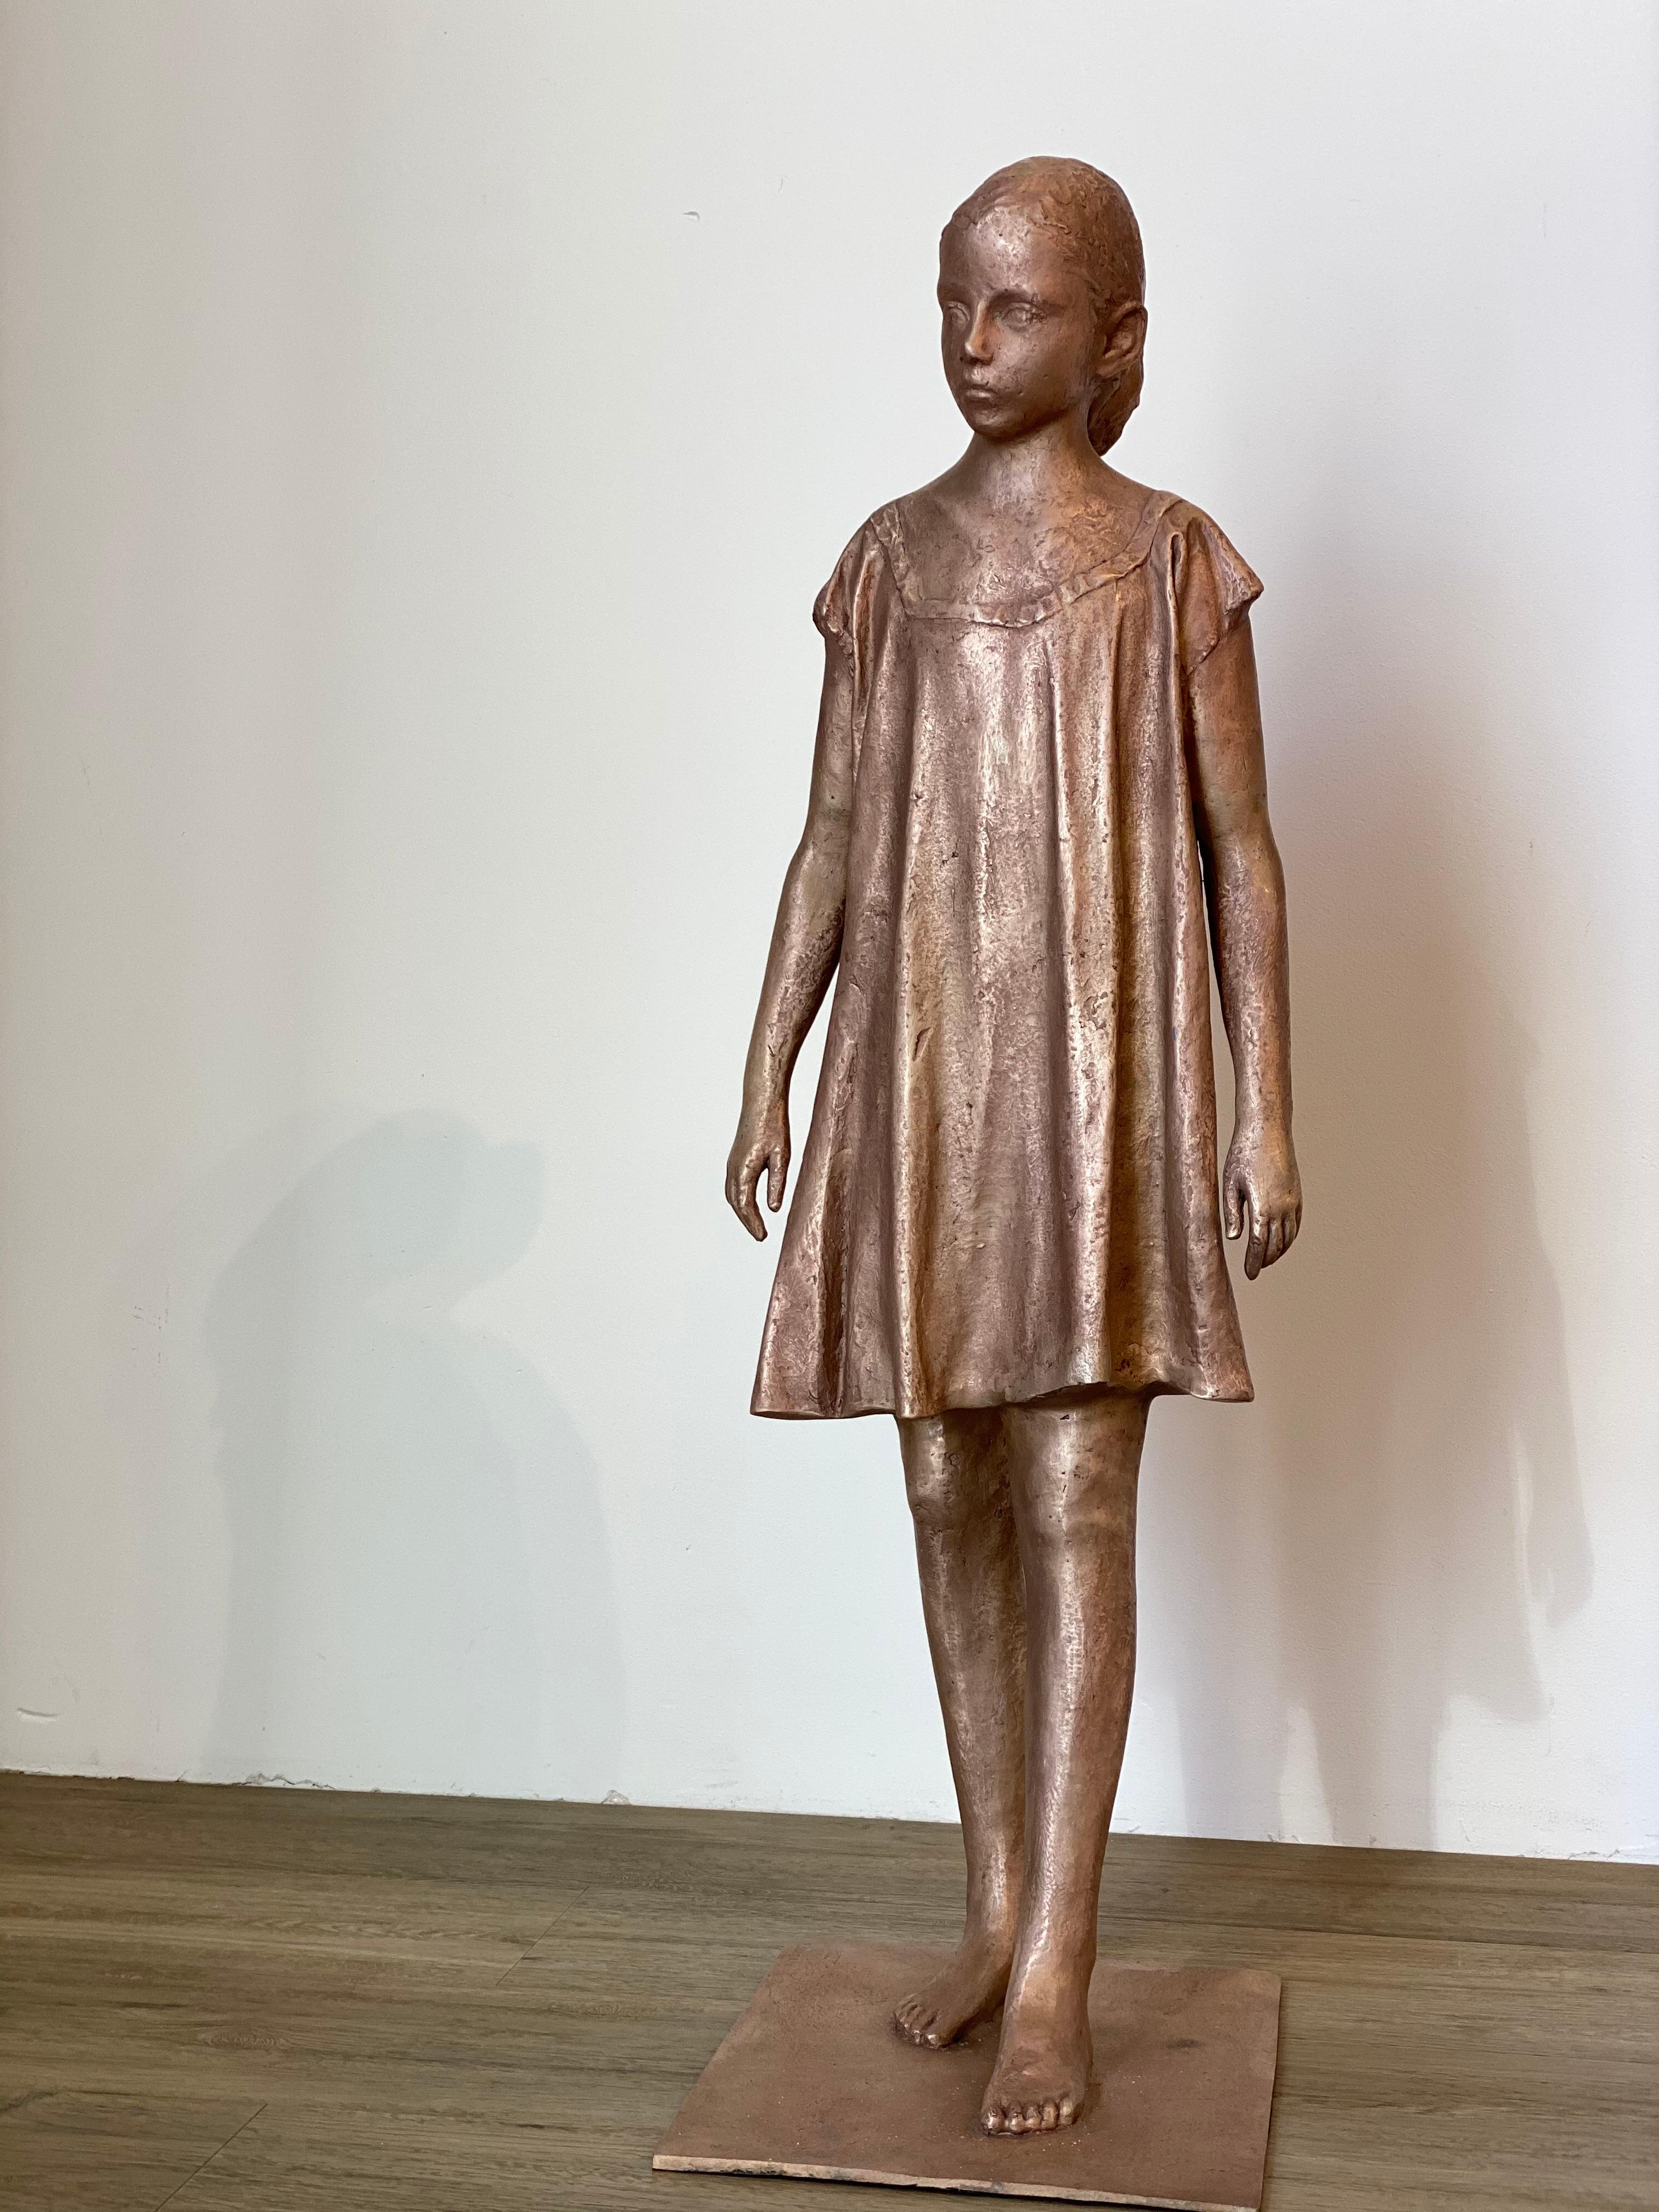 Girl, Walking- 21st Century Bronze Sculpture of a Young Girl in a Dress Walking.